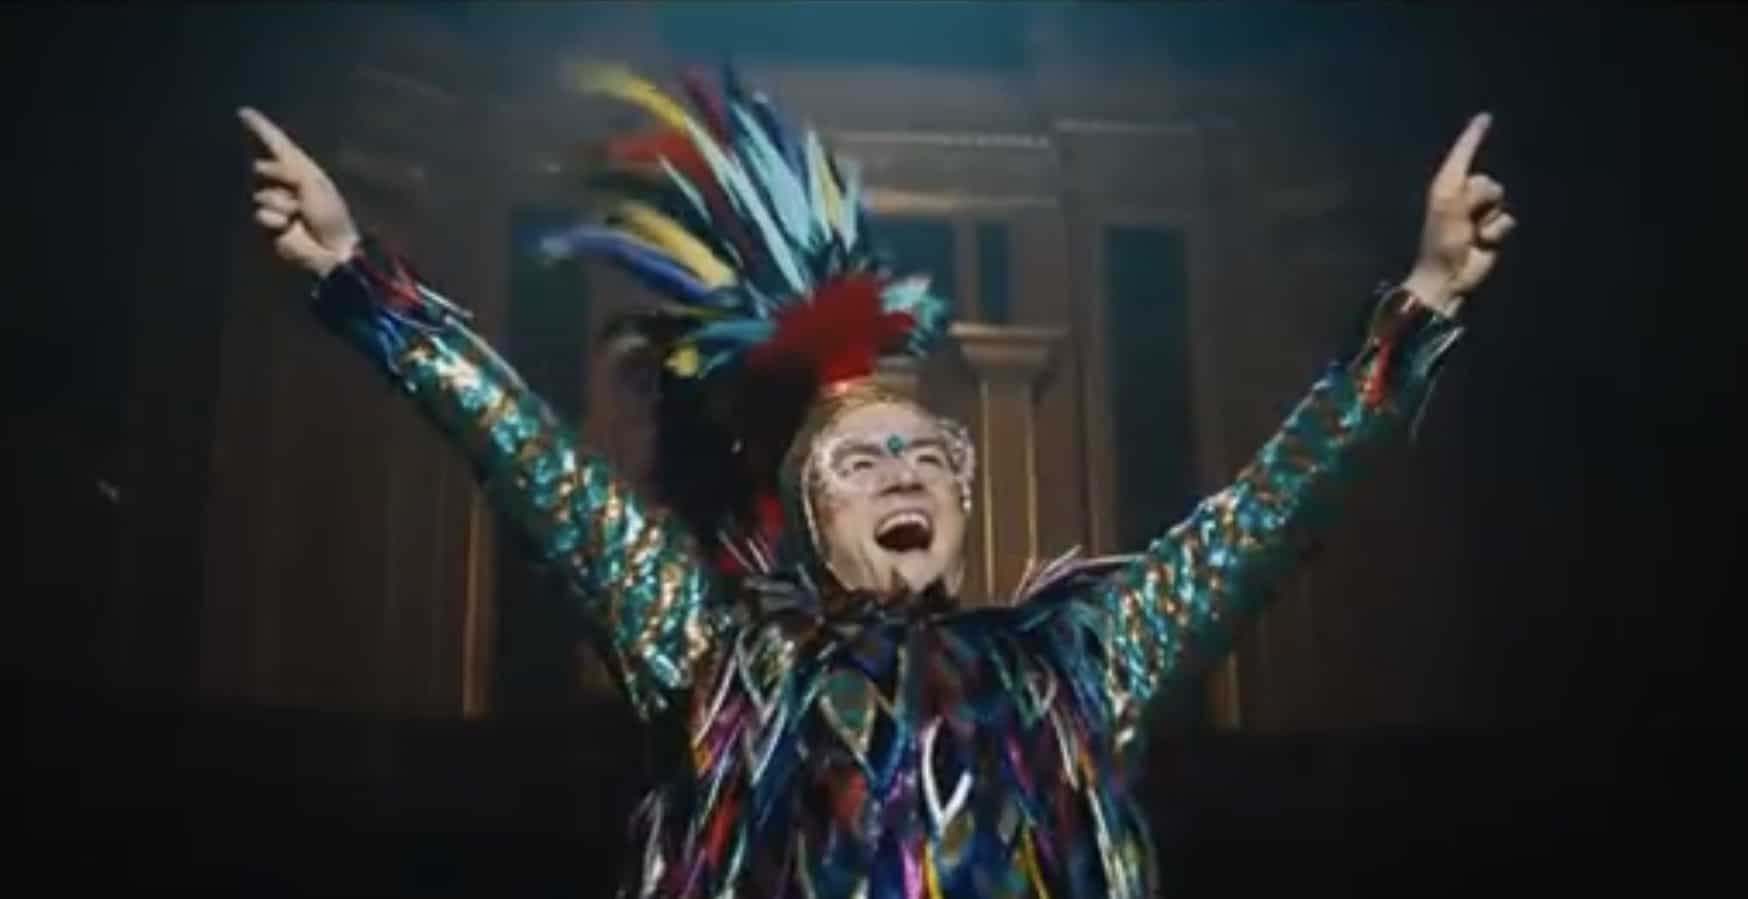 Rocketman Premieres at Cannes; Makes History as First Major Studio Film with Gay Sex Scene